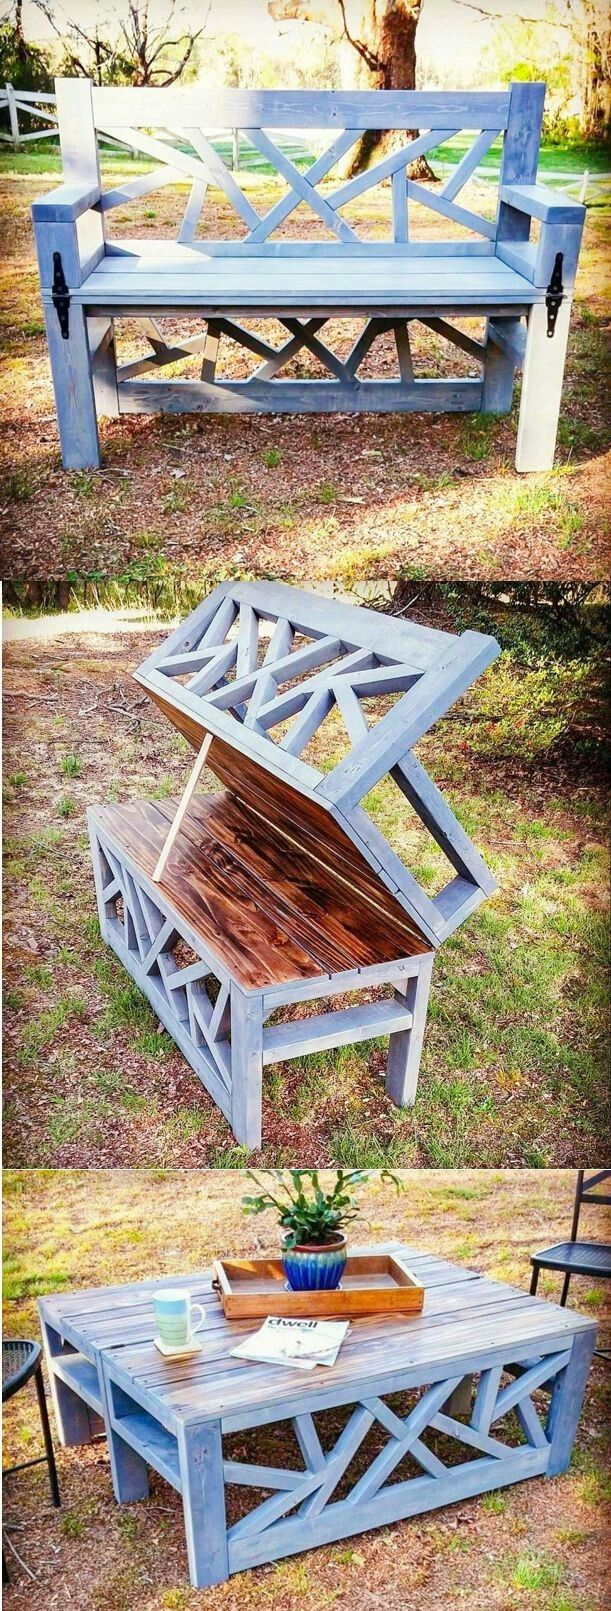 Bench into table